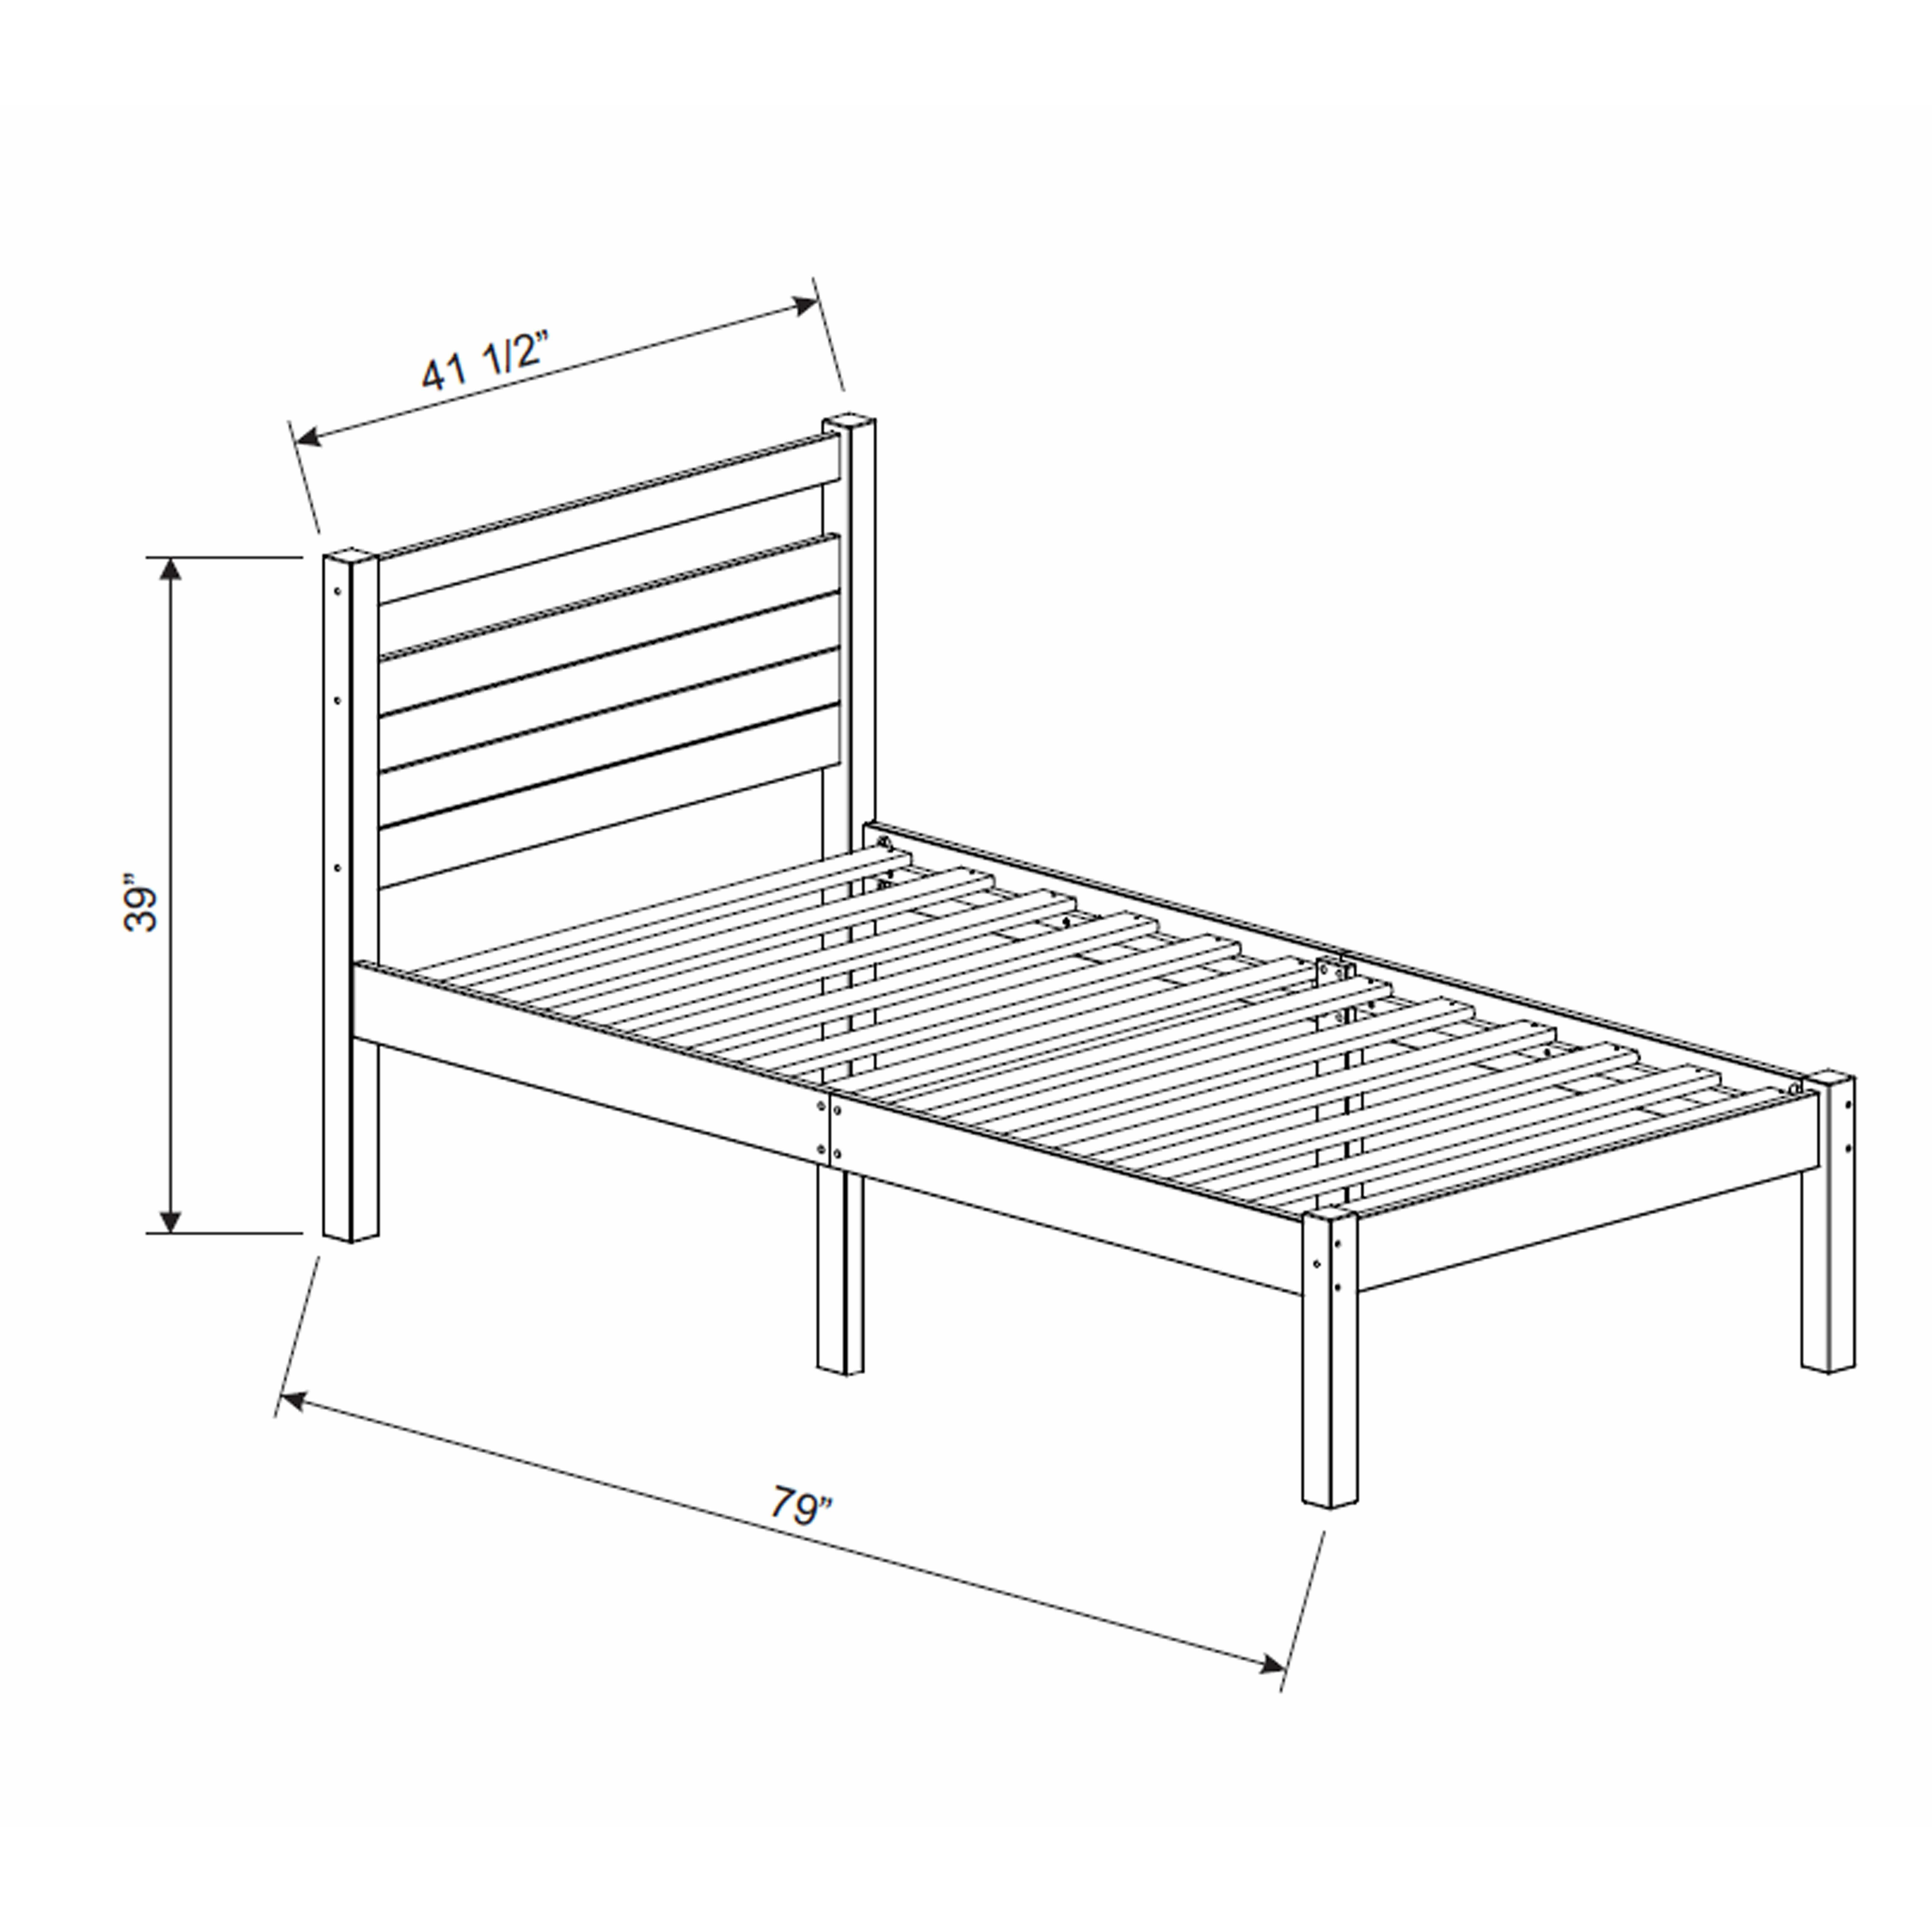 Marvelous photograph of 100%2525 Solid Wood Bronx Twin Bed in a Box 263.jpg with #7E614D color and 8000x8000 pixels